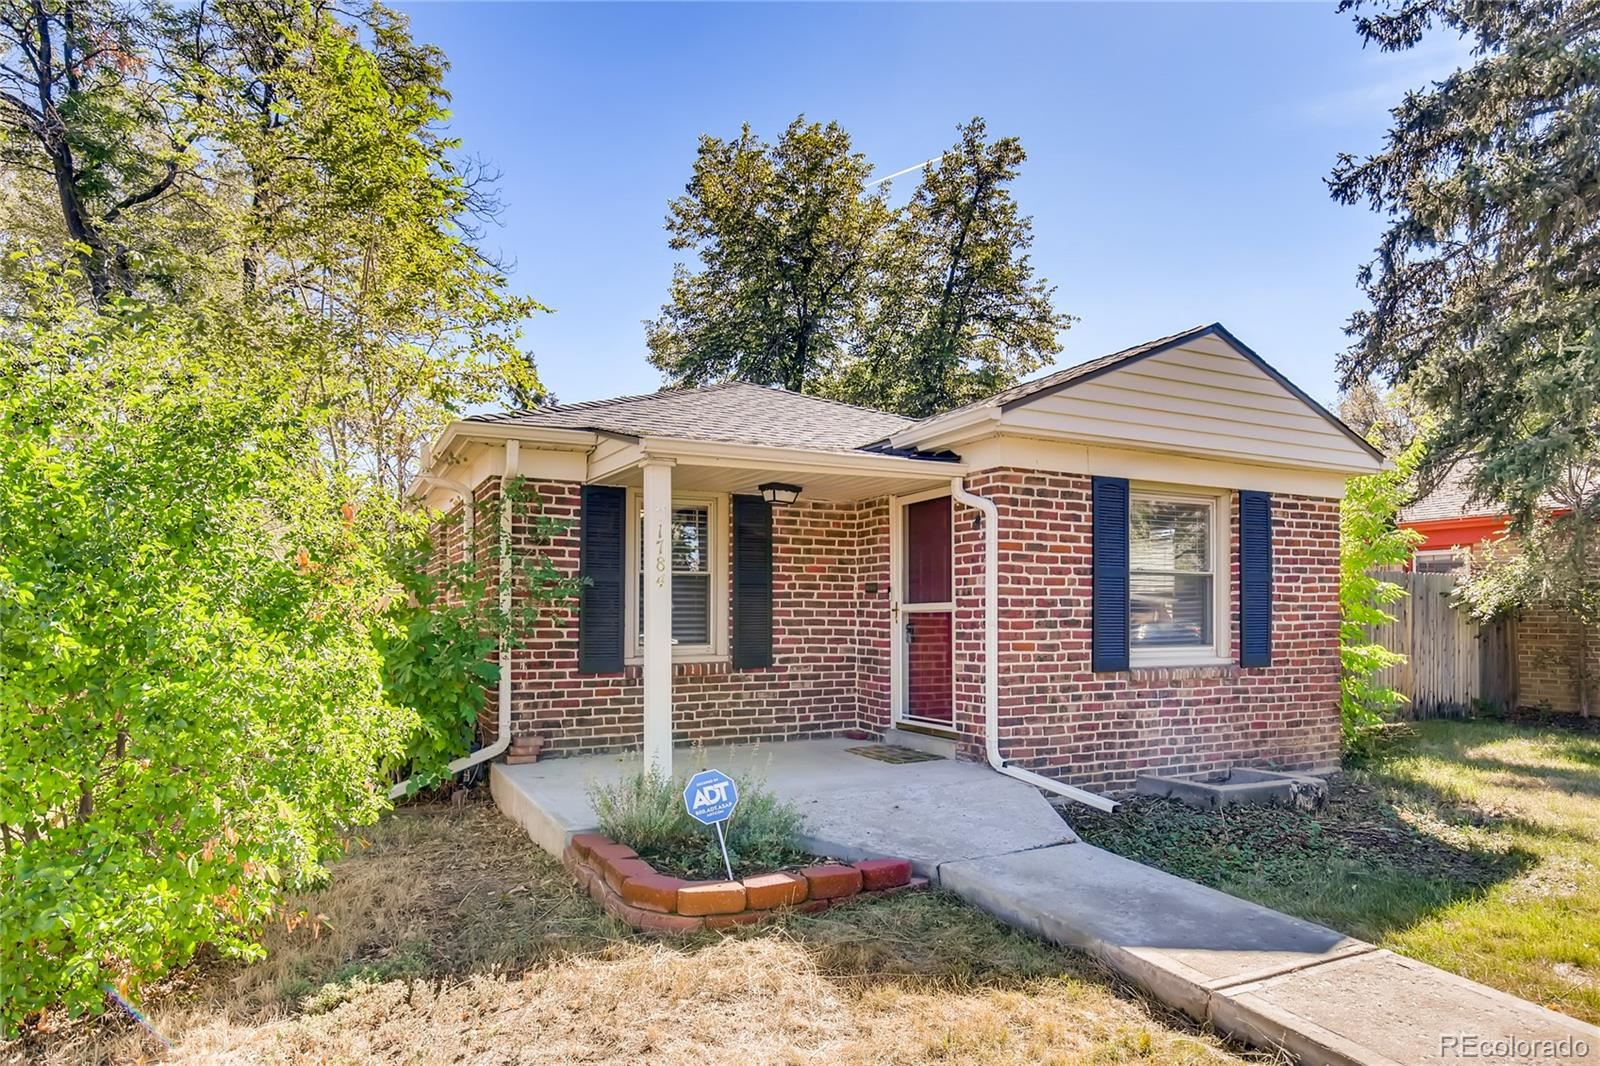 Photo of 1784 Quince Street, Denver, CO 80220 (MLS # 3812888)